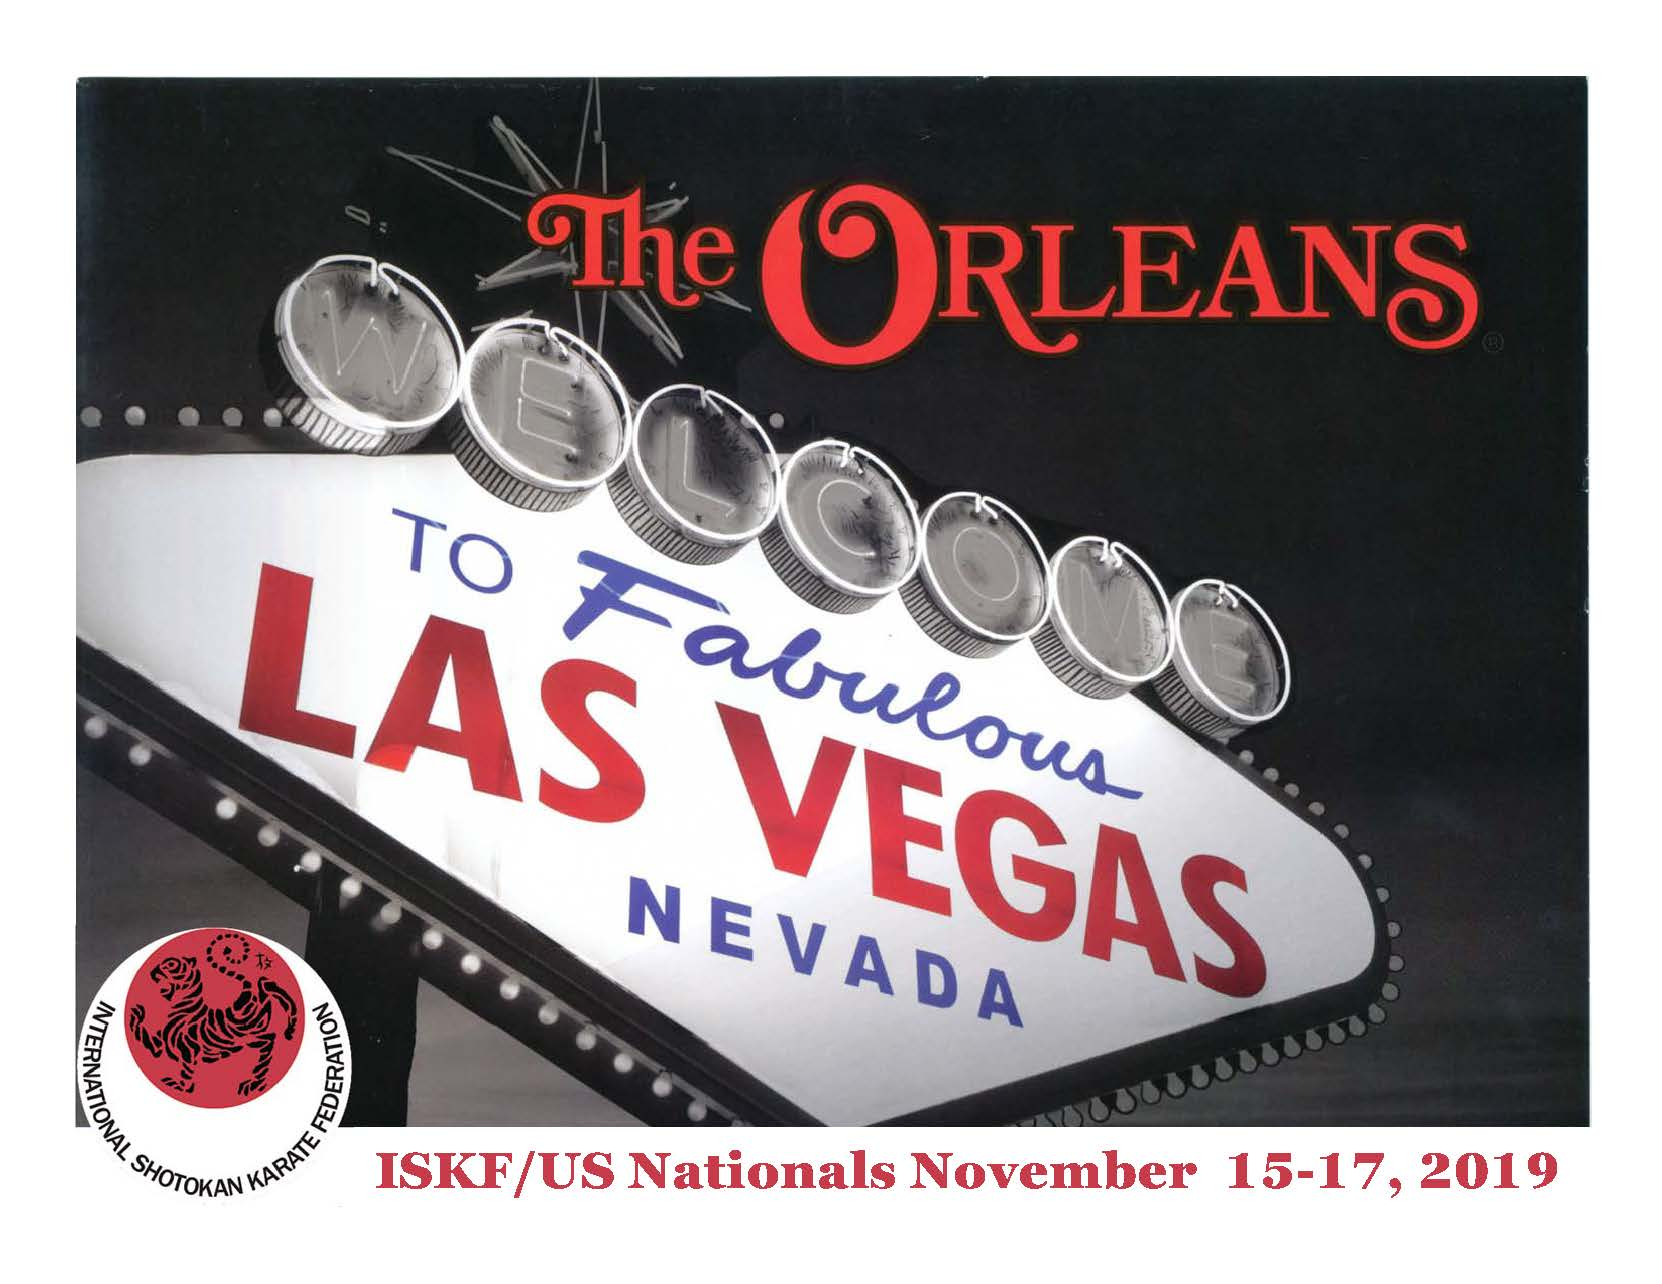 41st Annual ISKF/US National Championships @ Las Vegas, NV, November 15-17, 2019